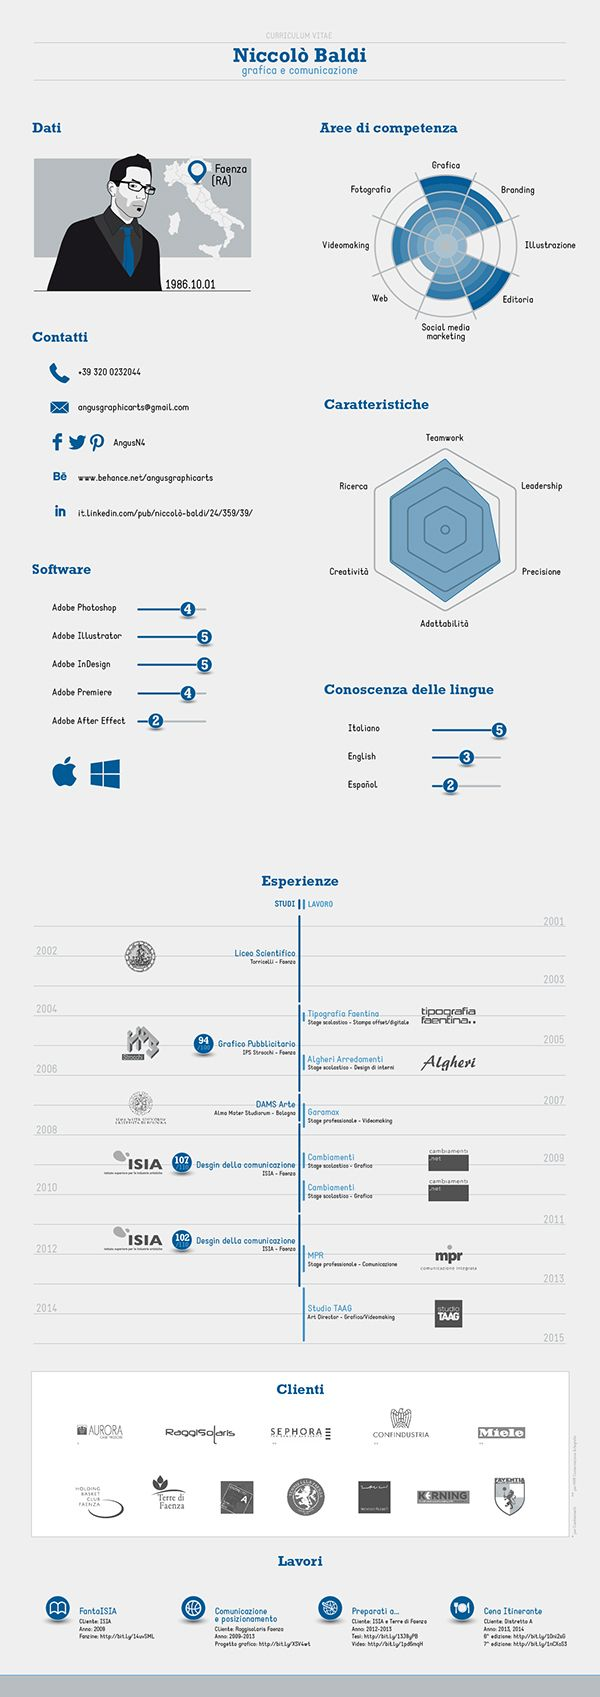 Infographic - Curriculum vitae on Behance